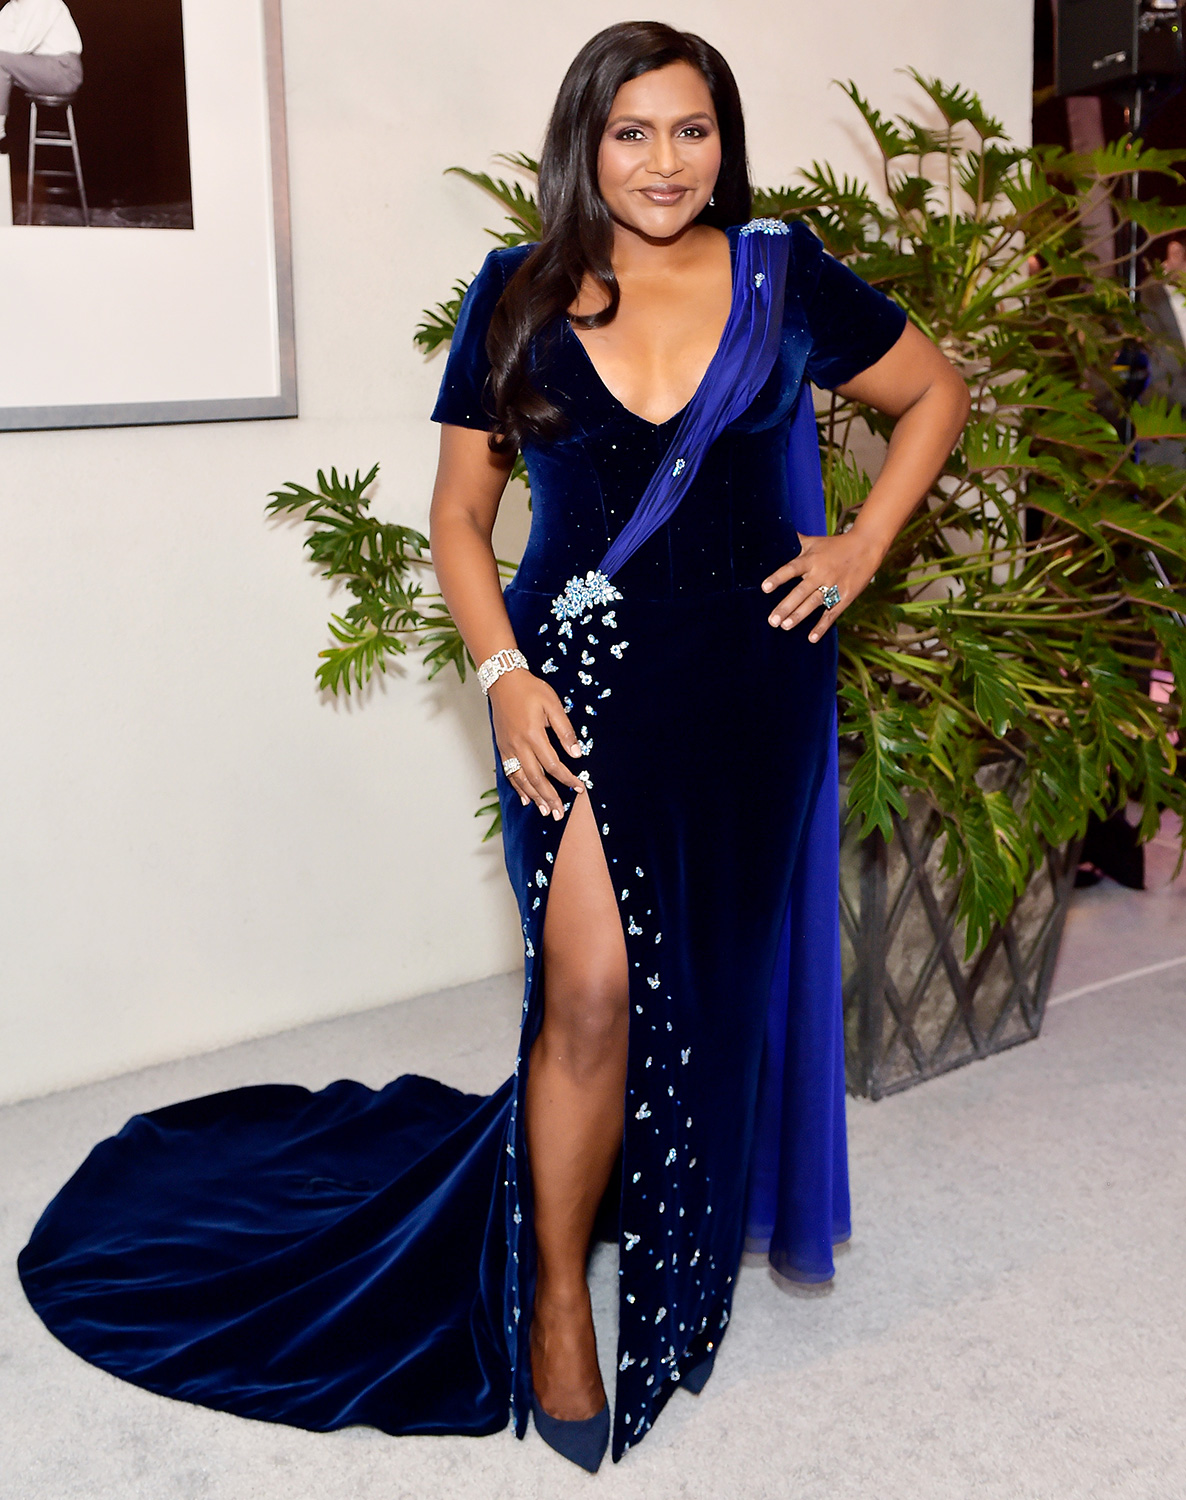 Mindy Kaling attends the 22nd CDGA (Costume Designers Guild Awards) at The Beverly Hilton Hotel on January 28, 2020 in Beverly Hills, California